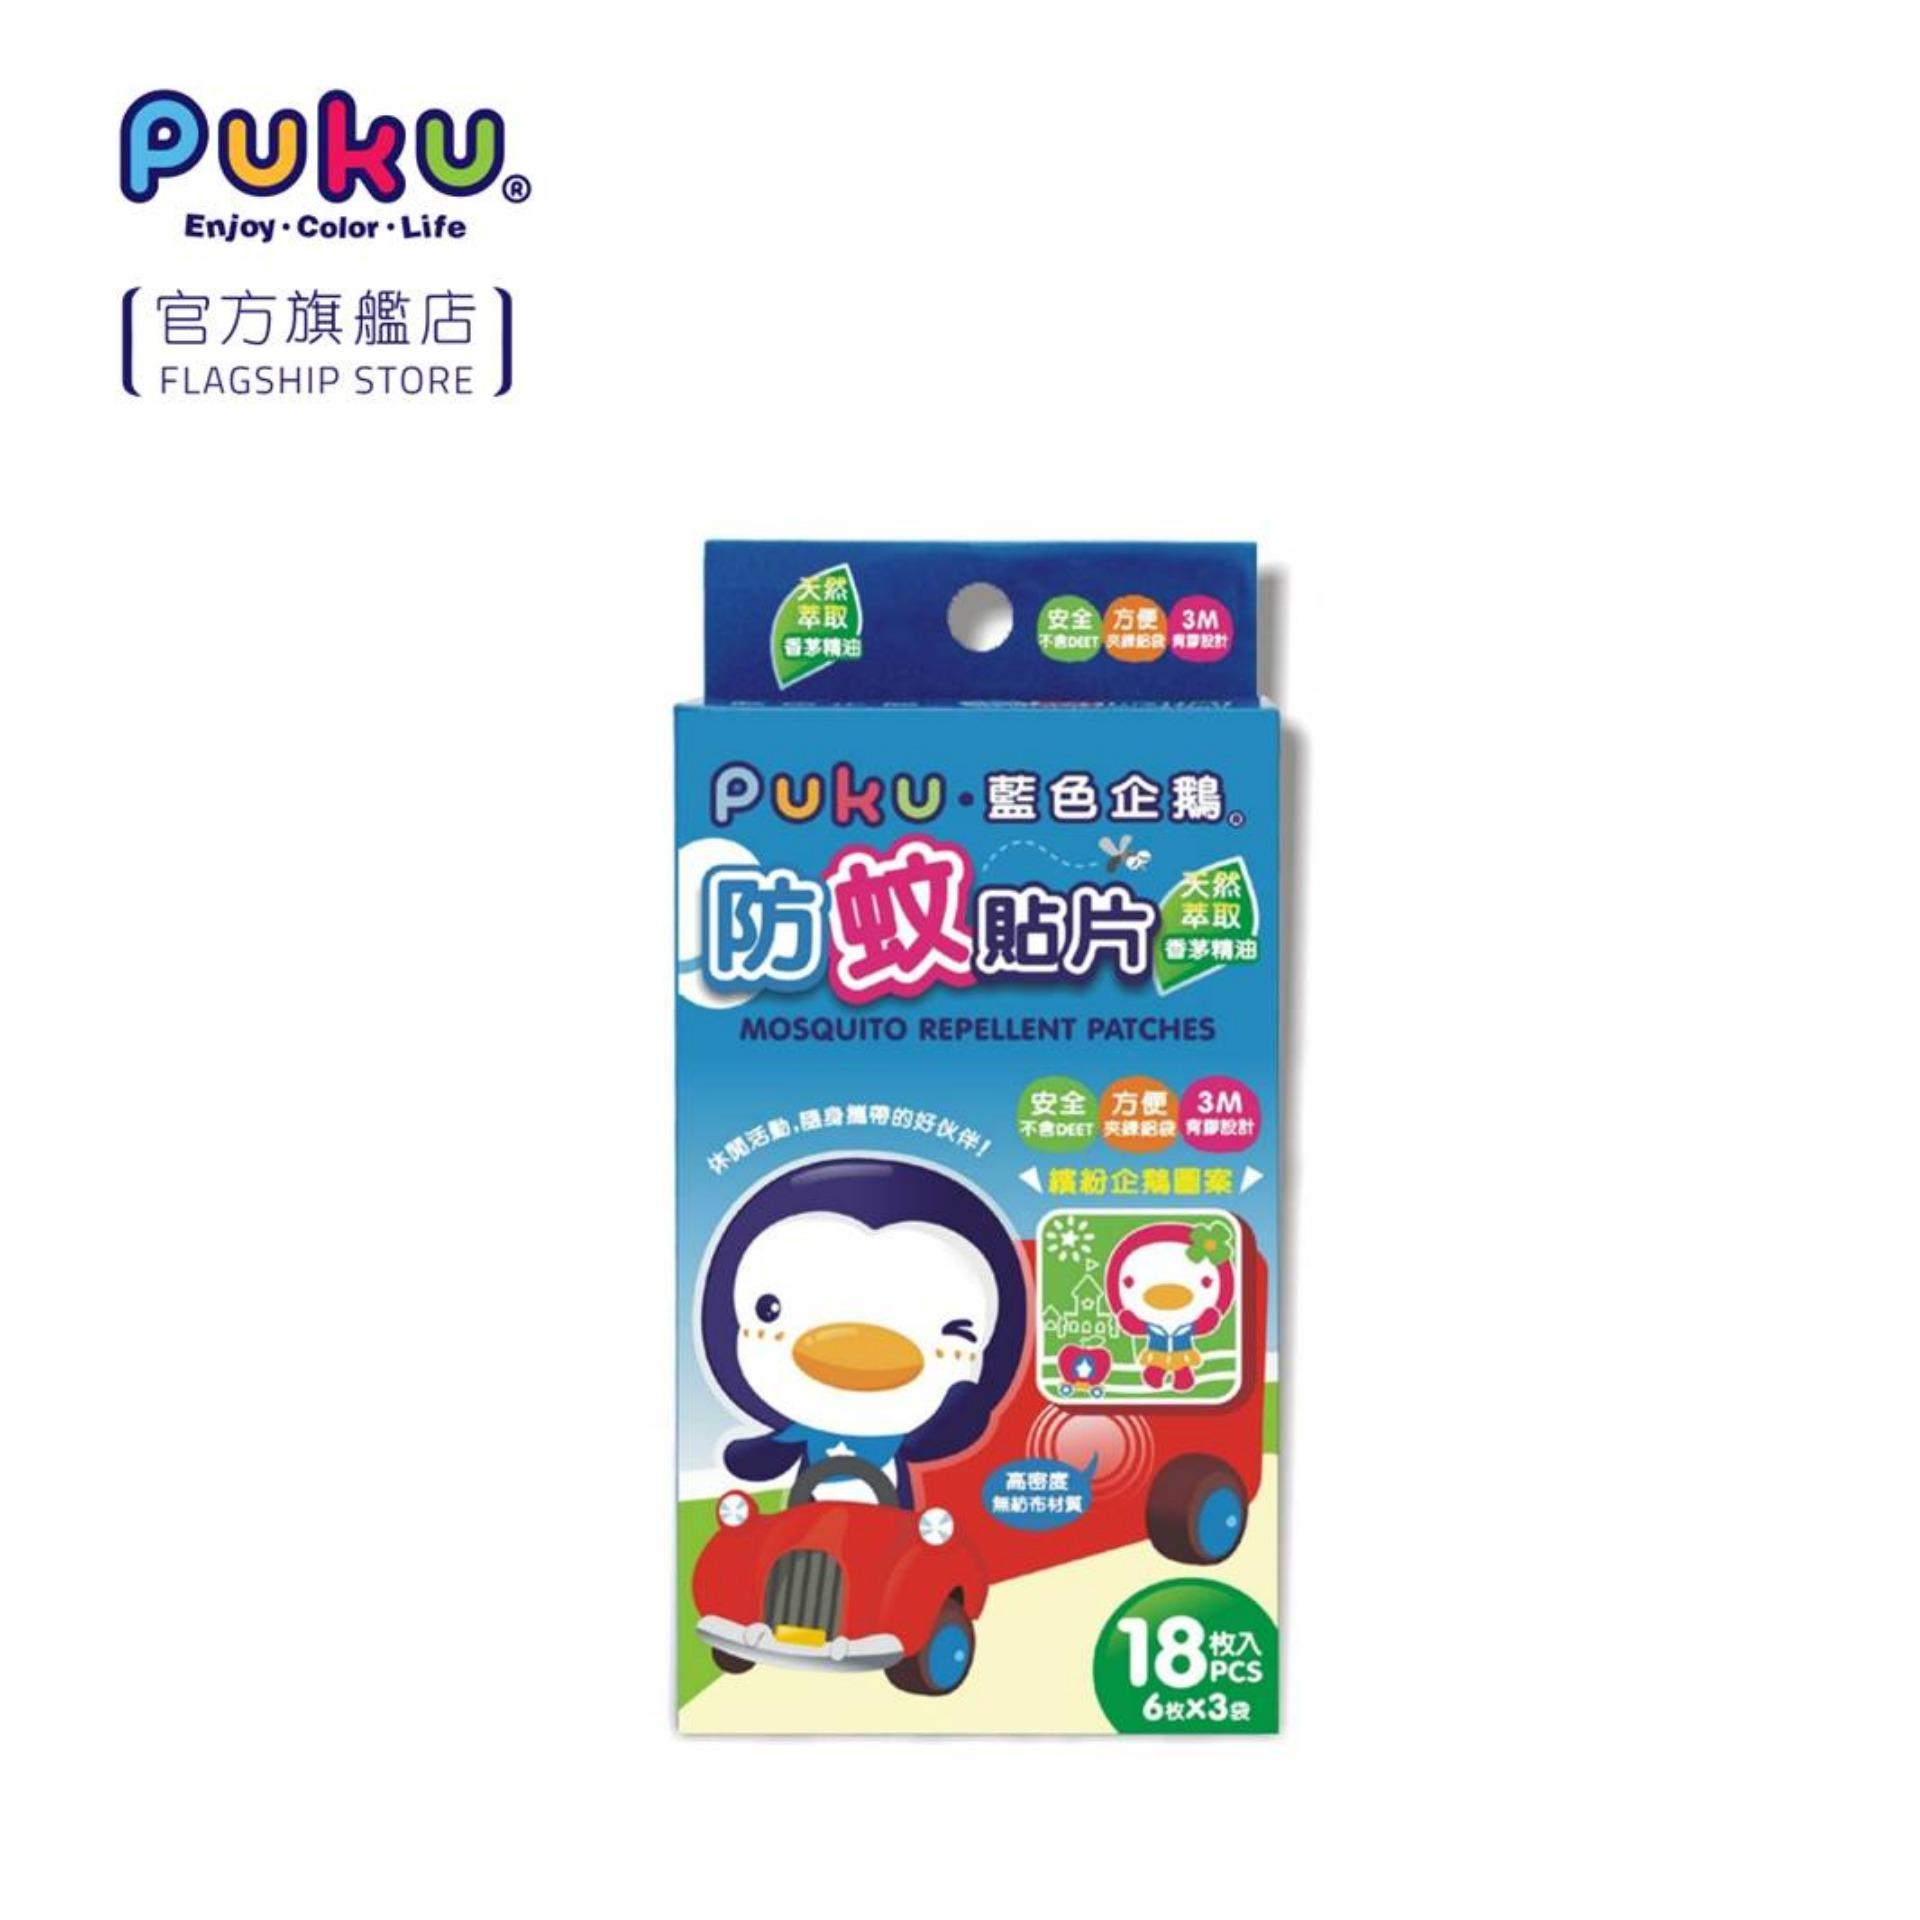 Puku Mosquito Repellent Patches 18pcs By Puku Official Store.